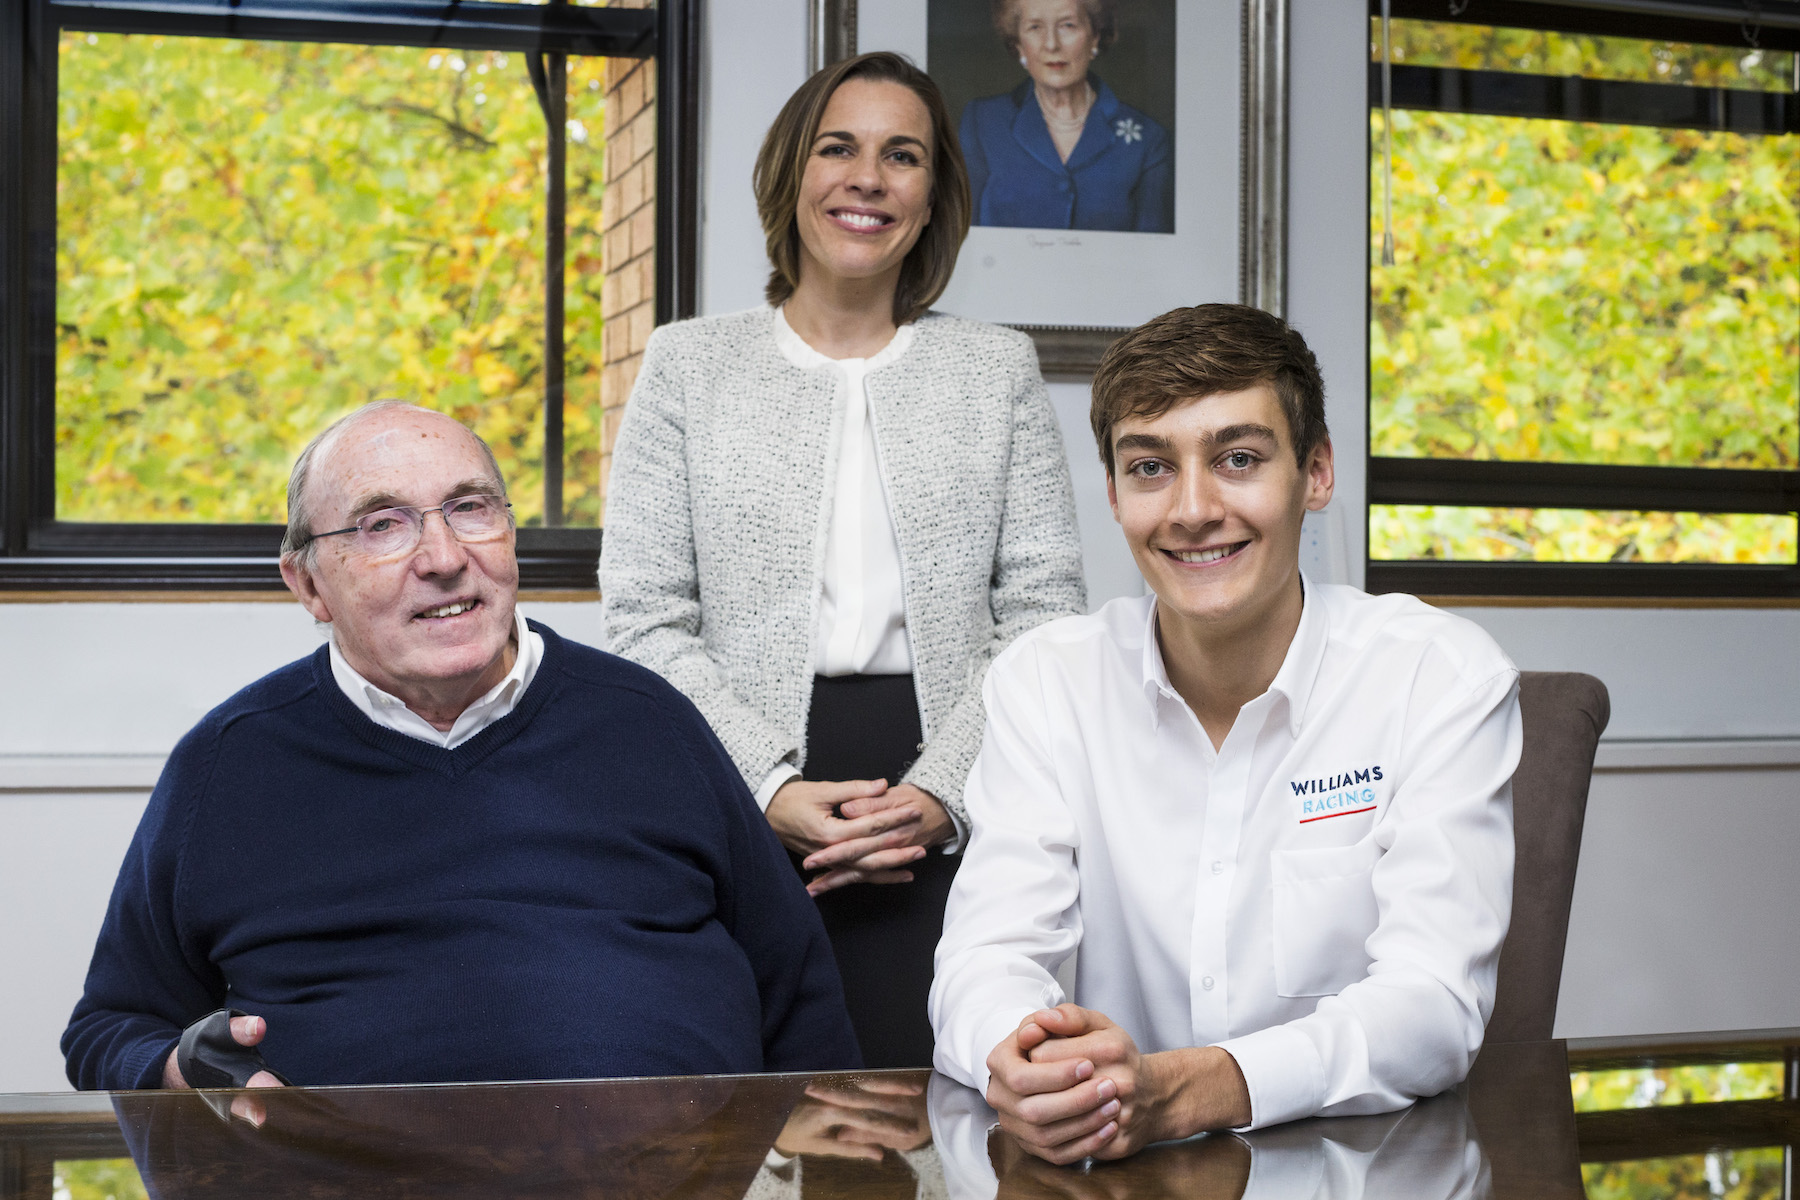 2018 Frank Williams, Claire Williams, and Goerge Russel copy.jpg